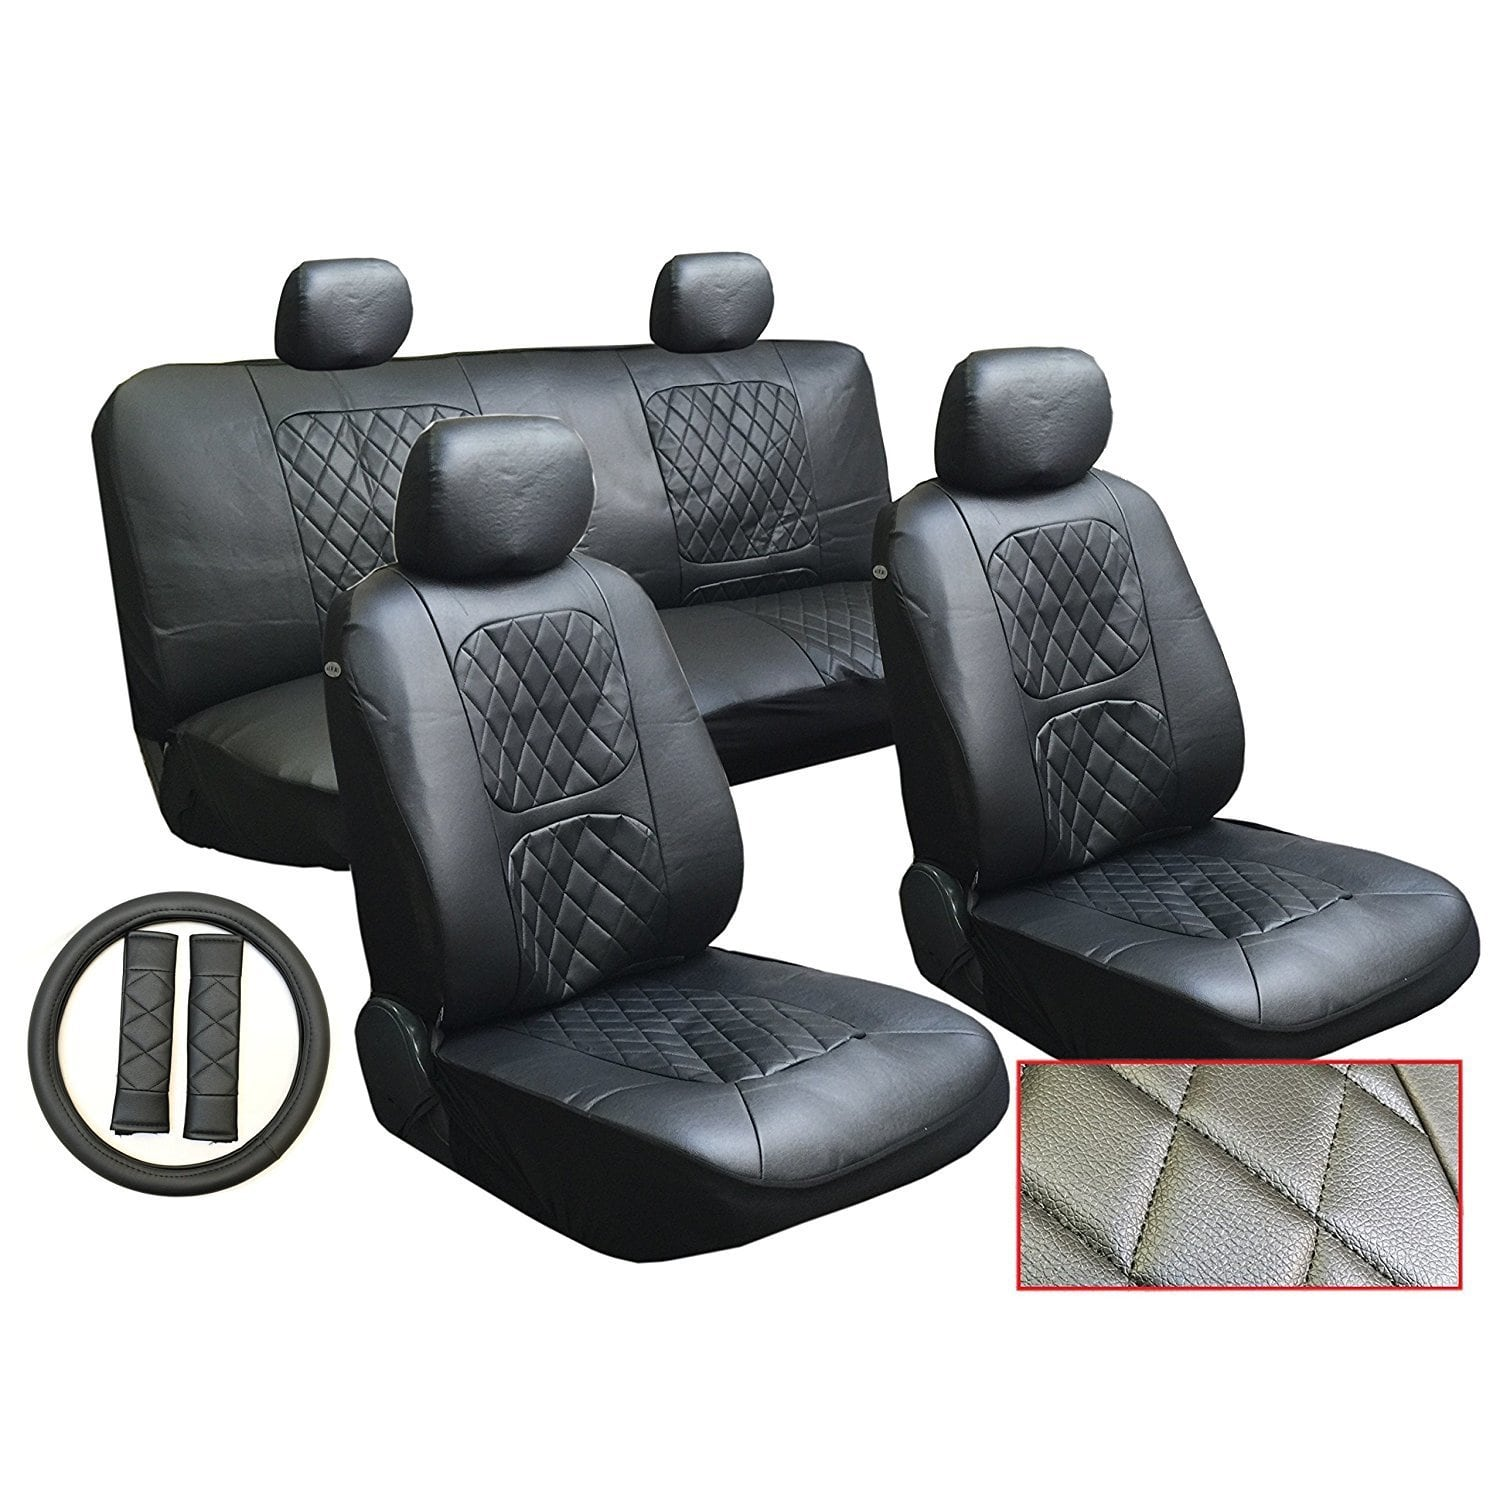 Unique Imports 13pc Leatherette Car Truck SUV Seat Covers & Steering Set,Black